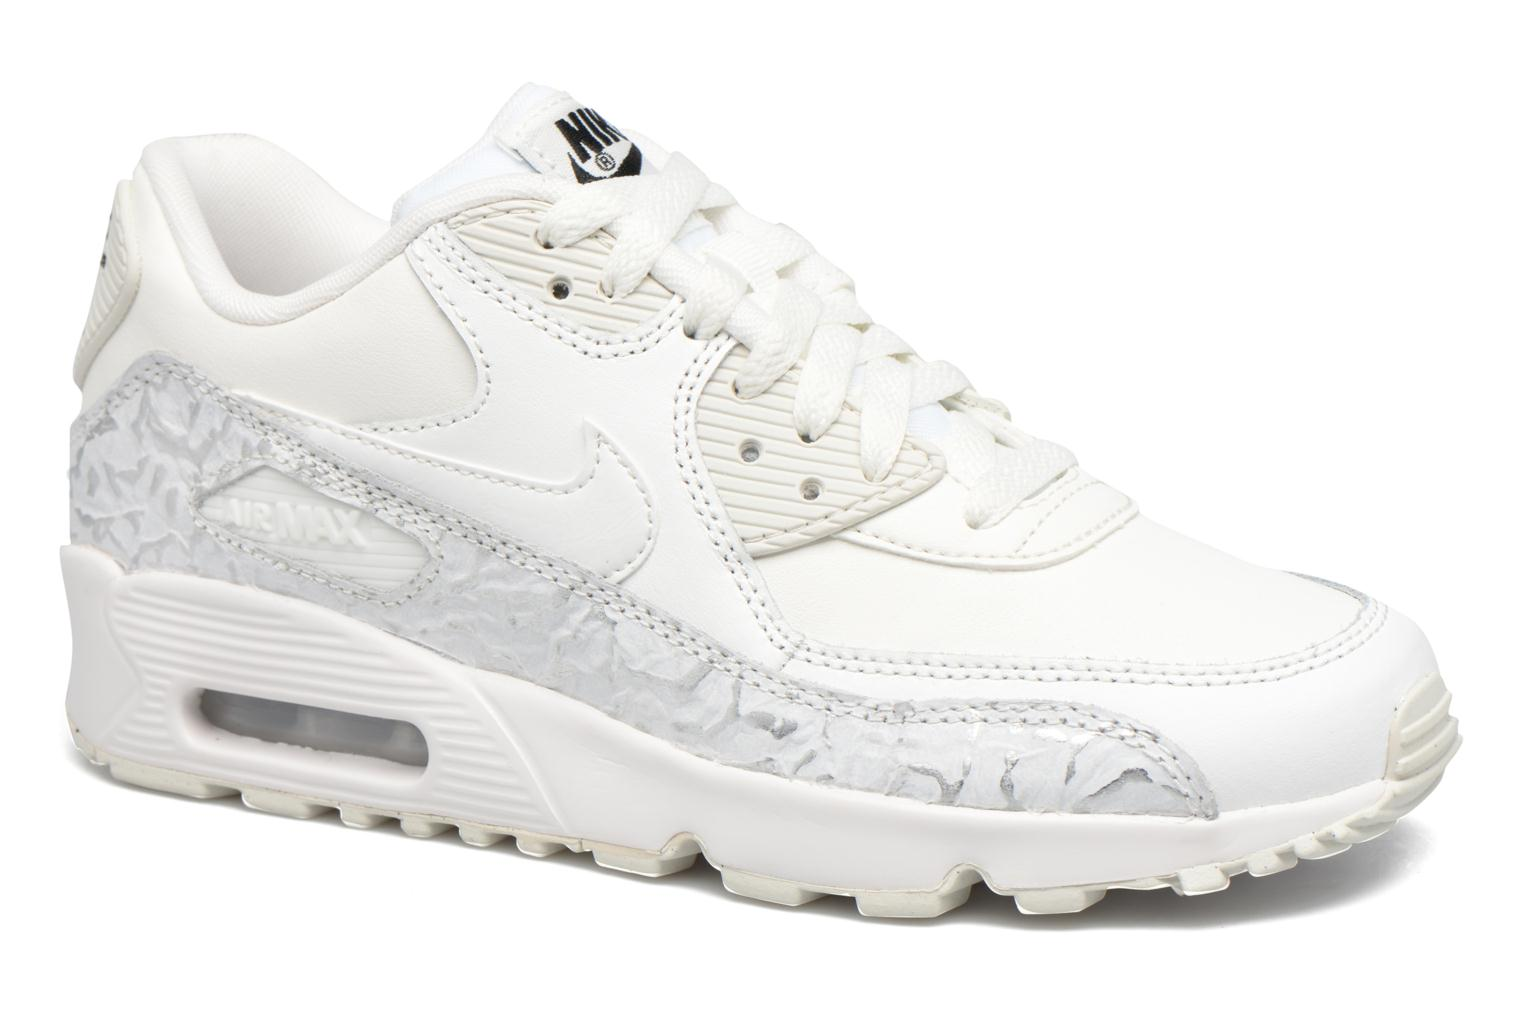 Nike Nike Air Max 90 Ltr (Ps) Blanco 5avRwkEe02